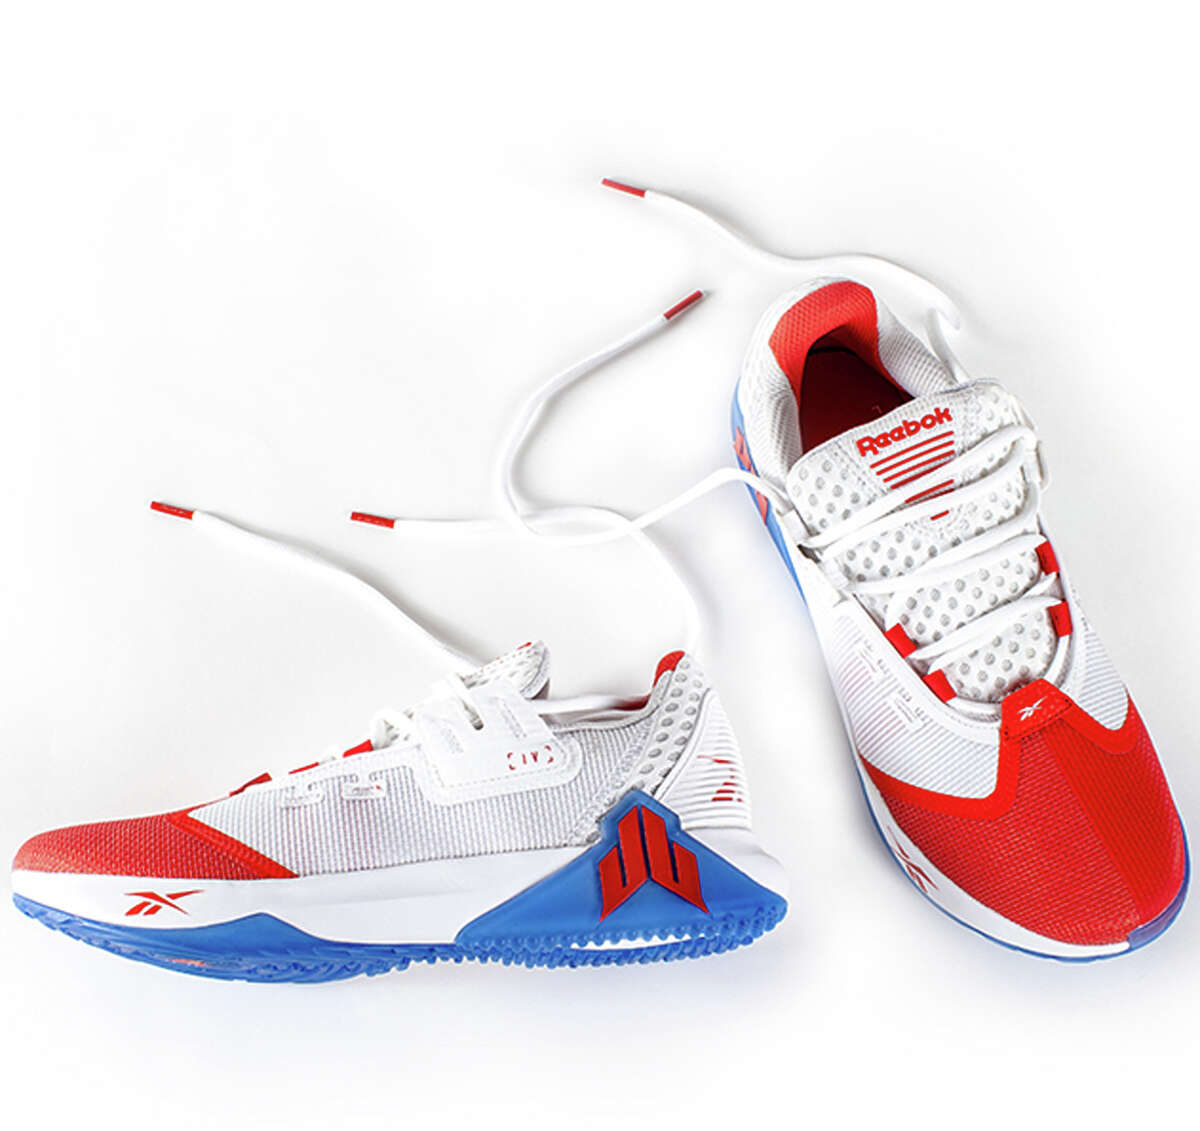 J.J. Watt's new sneakers - JJ IVs - were released by Reebok on Wednesday.